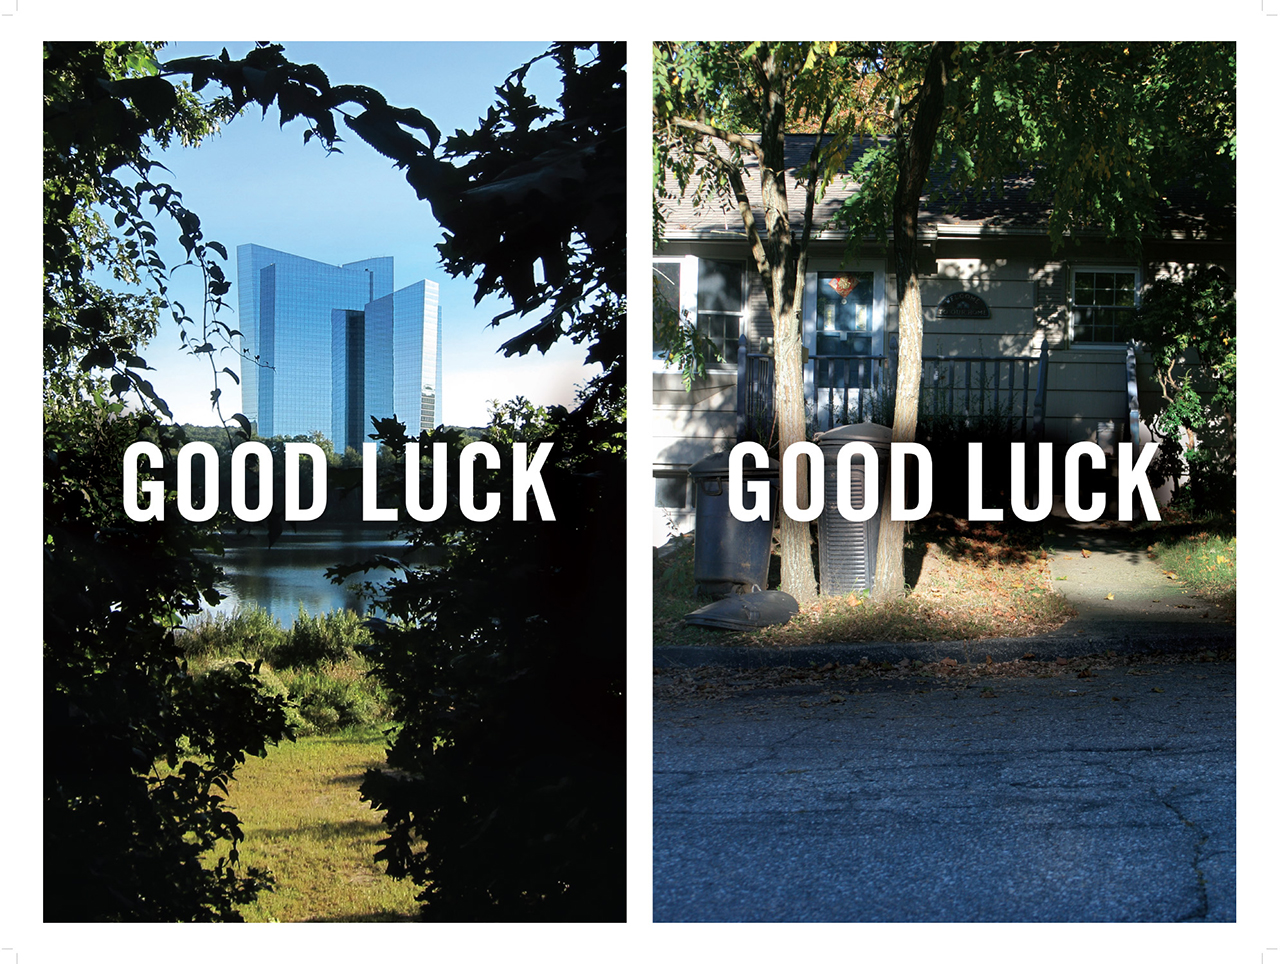 "The same faith in luck that's inscribed in the casino workers' houses through geomantic plantings entices many of the Asian patrons they serve at the casinos. Stephen Fan and Shane Keaney, ""Good Luck/Good Luck"" (2013), pigmented inkjet prints, 24""x18"" (image courtesy Stephen Fan and Shane Keaney)"